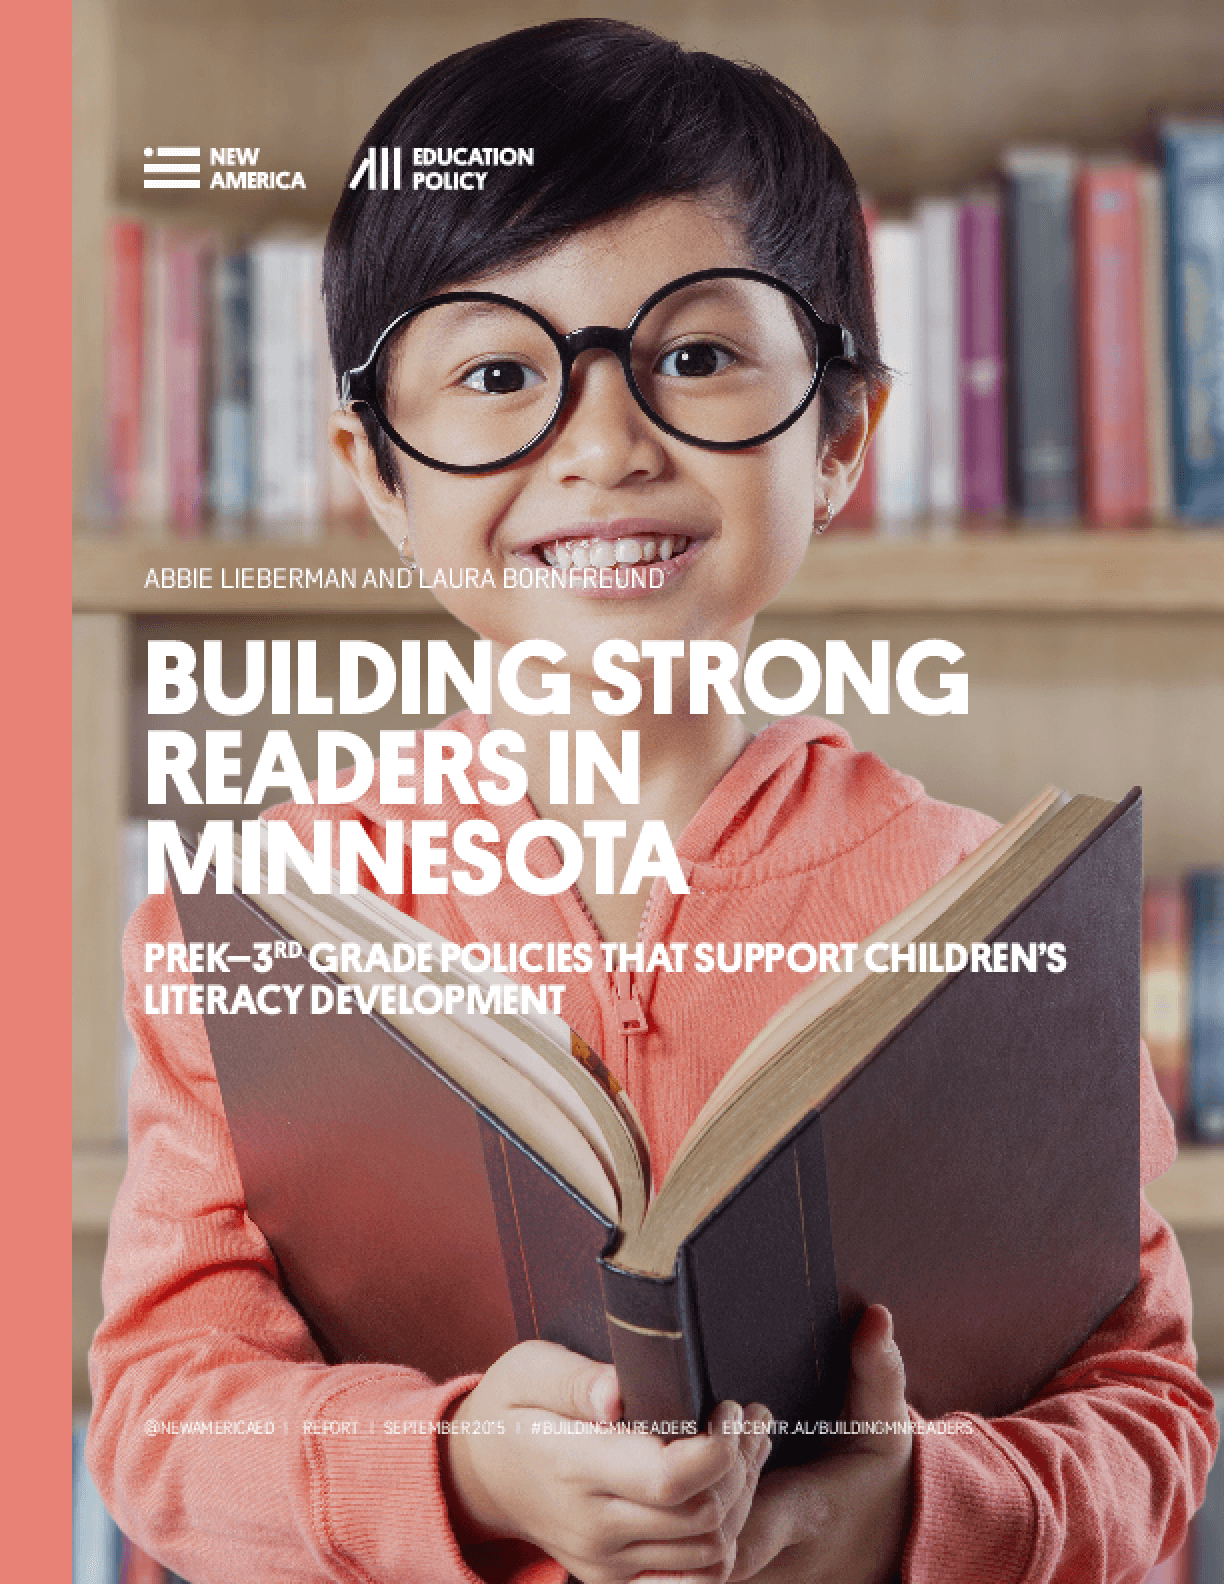 Building Strong Readers In Minnesota: PreK-3rd Grade Policies That Support Children's Literacy Development